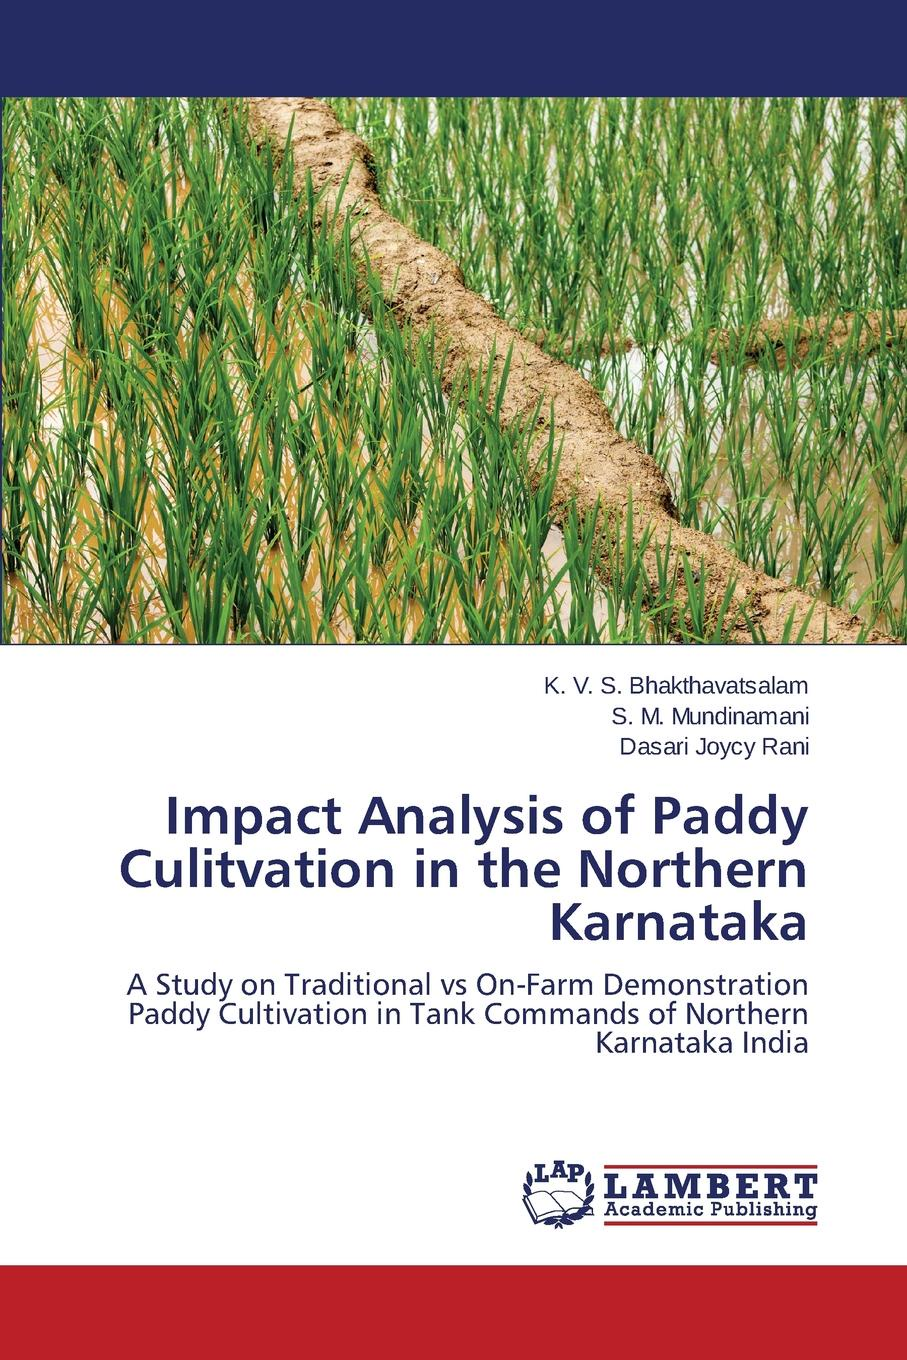 Bhakthavatsalam K. V. S., Mundinamani S. M., Joycy Rani Dasari Impact Analysis of Paddy Culitvation in the Northern Karnataka methods in paleoethnobotany studies of cereal cultivation